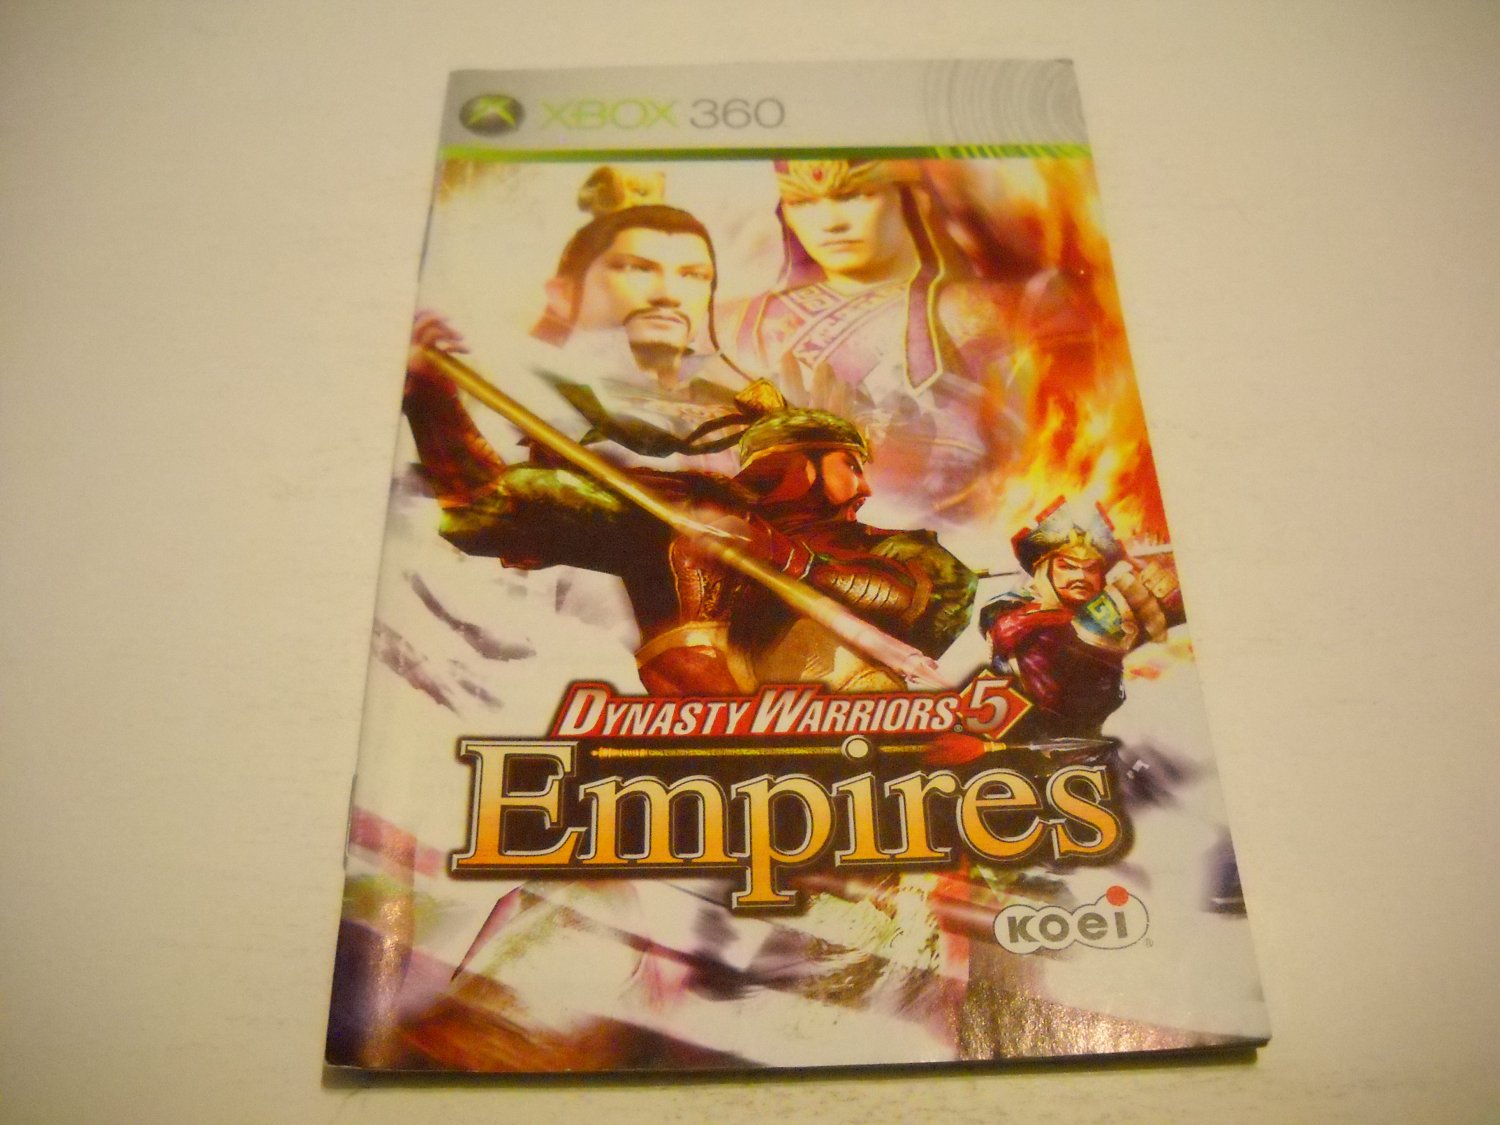 Manual ONLY ~  for Dynasty Warriors 5 Empires   - Xbox 360 Instruction Booklet